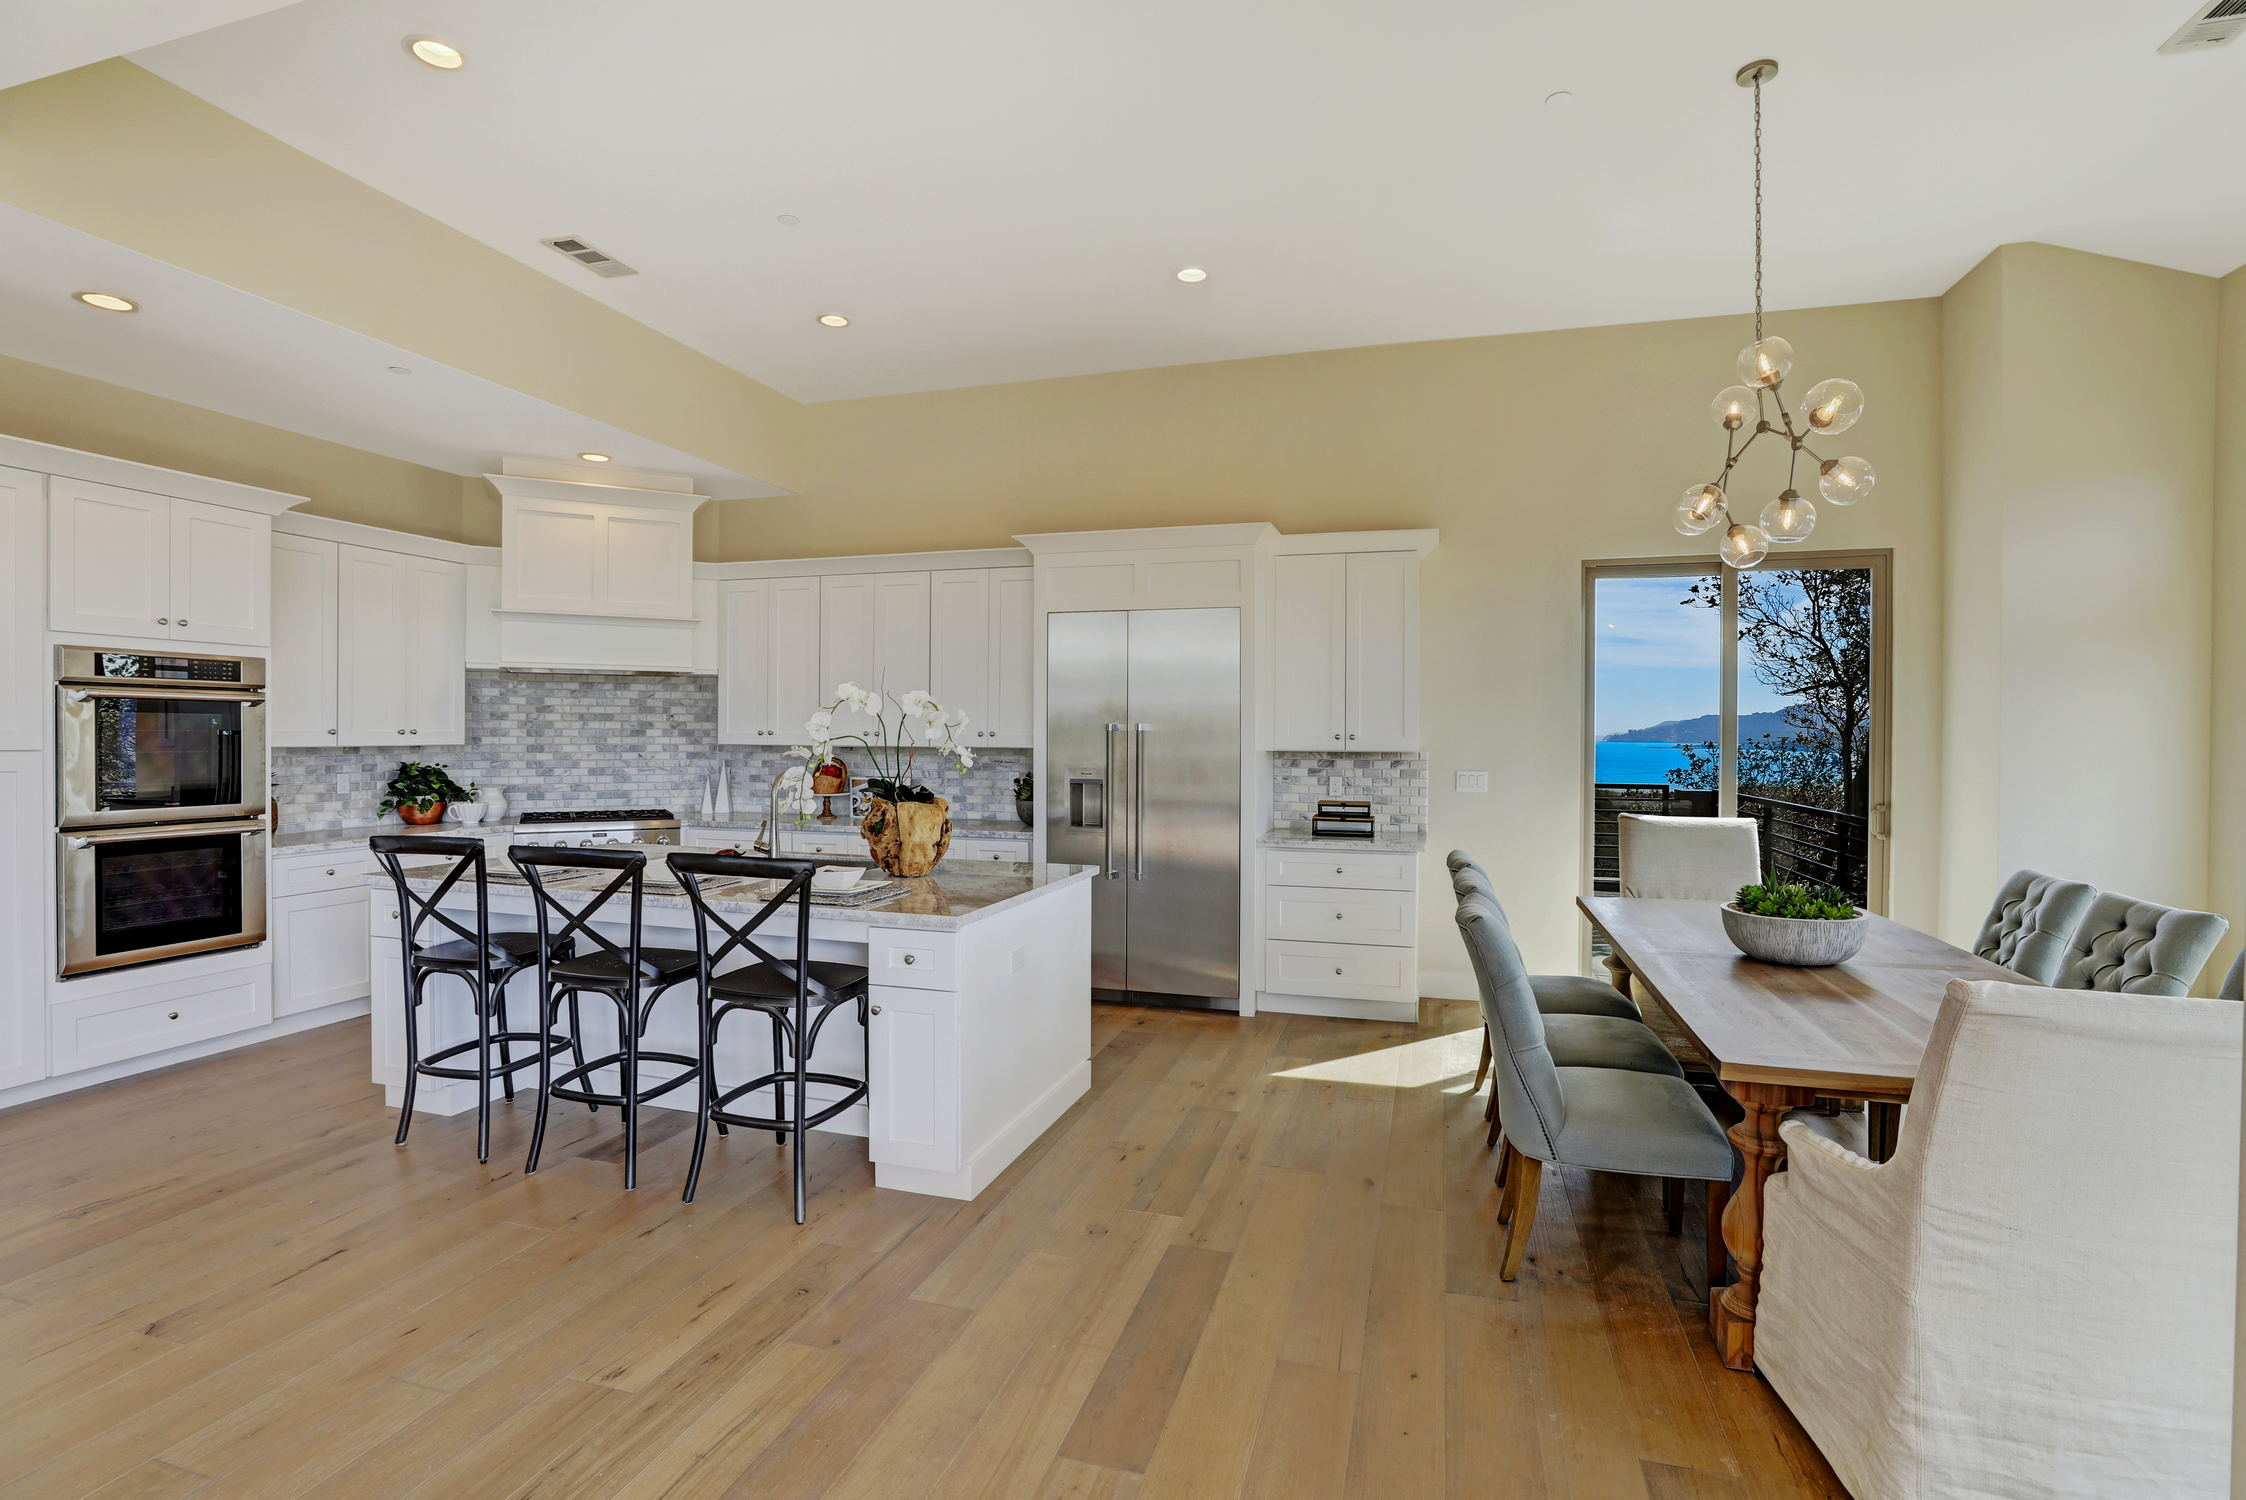 31 Drakes Cove, Larkspur Homes for Sale30 MLS - Own Marin with Compass - Mill Valley Realtor.jpg